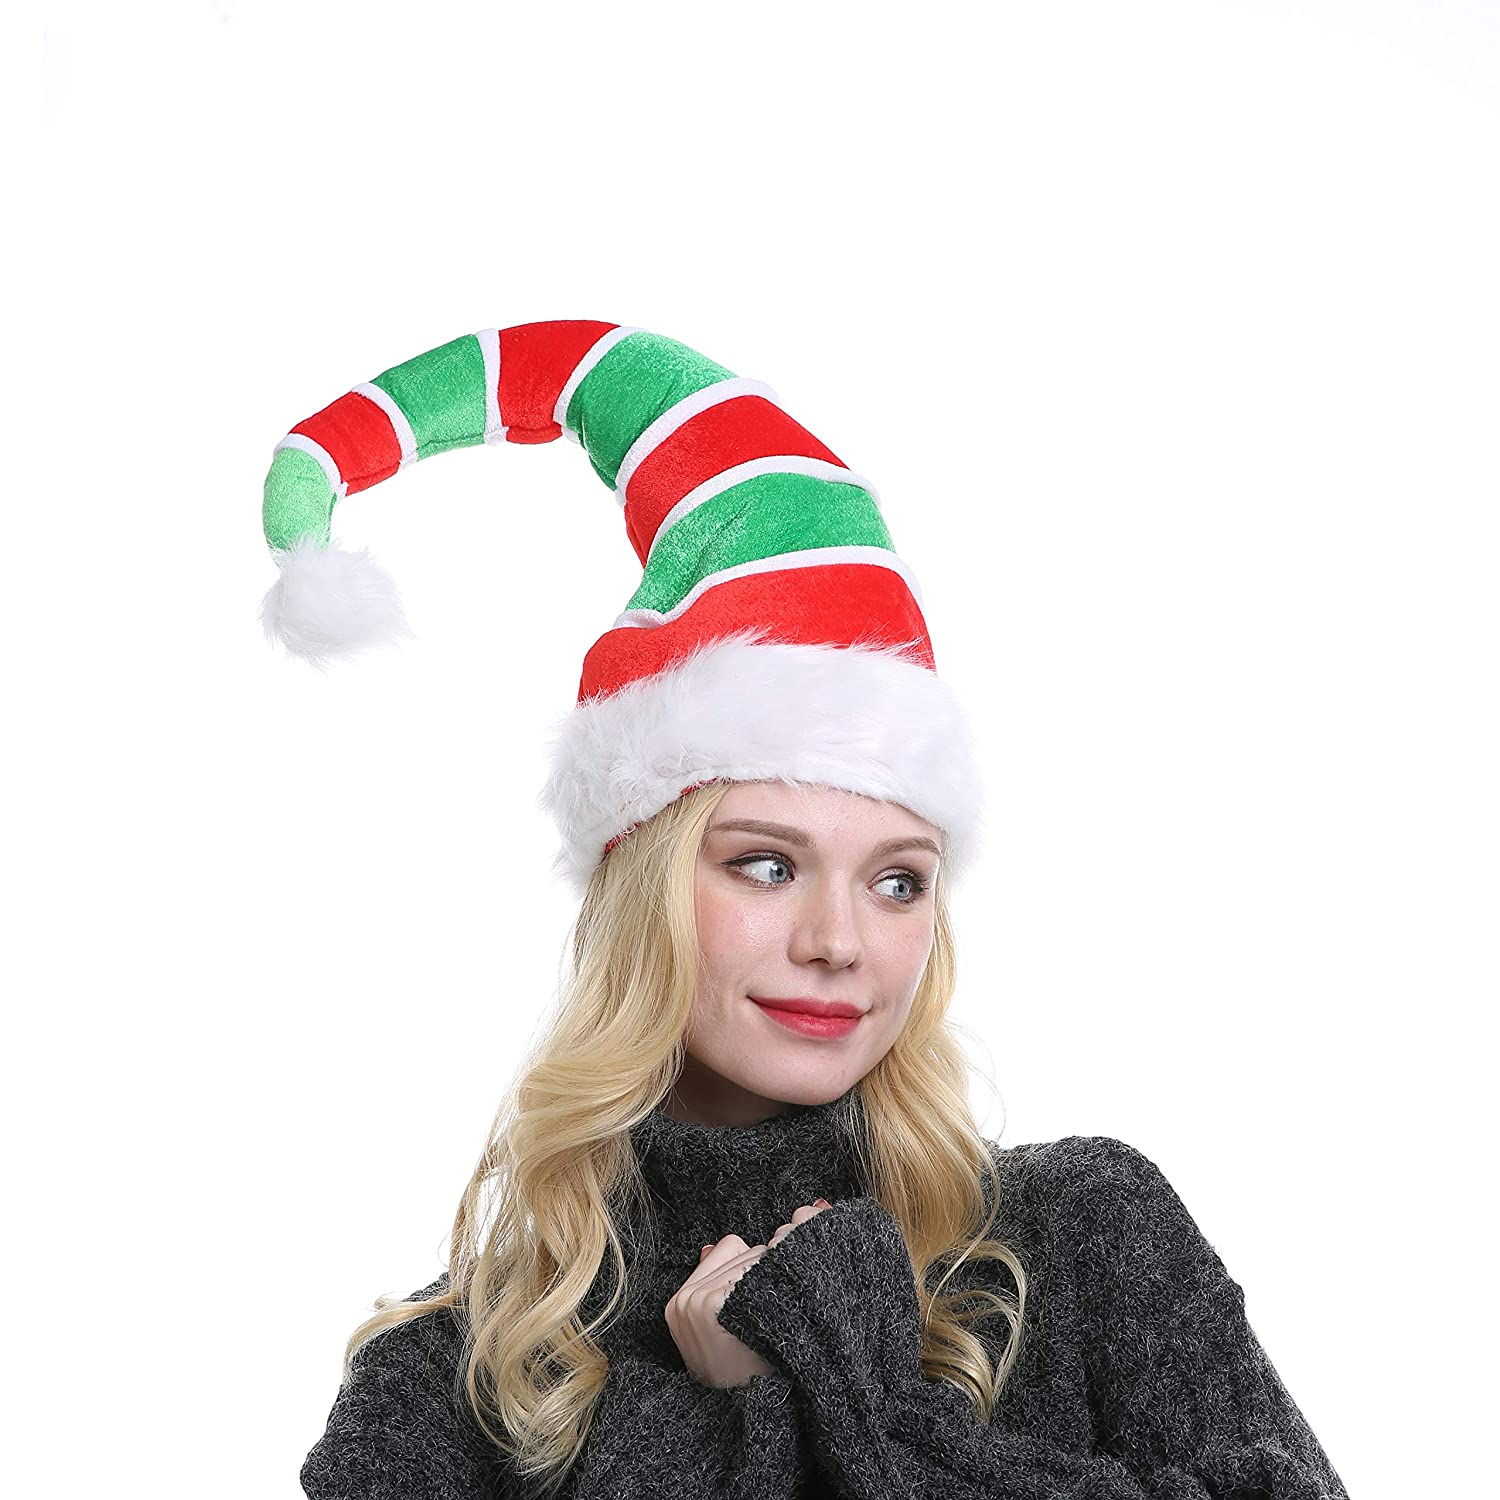 04e7f322462 Amazon.com  Funny Christmas Long Elf Hat Adults Novelty Party Holiday  Headwear Xmas Ornament  Health   Personal Care